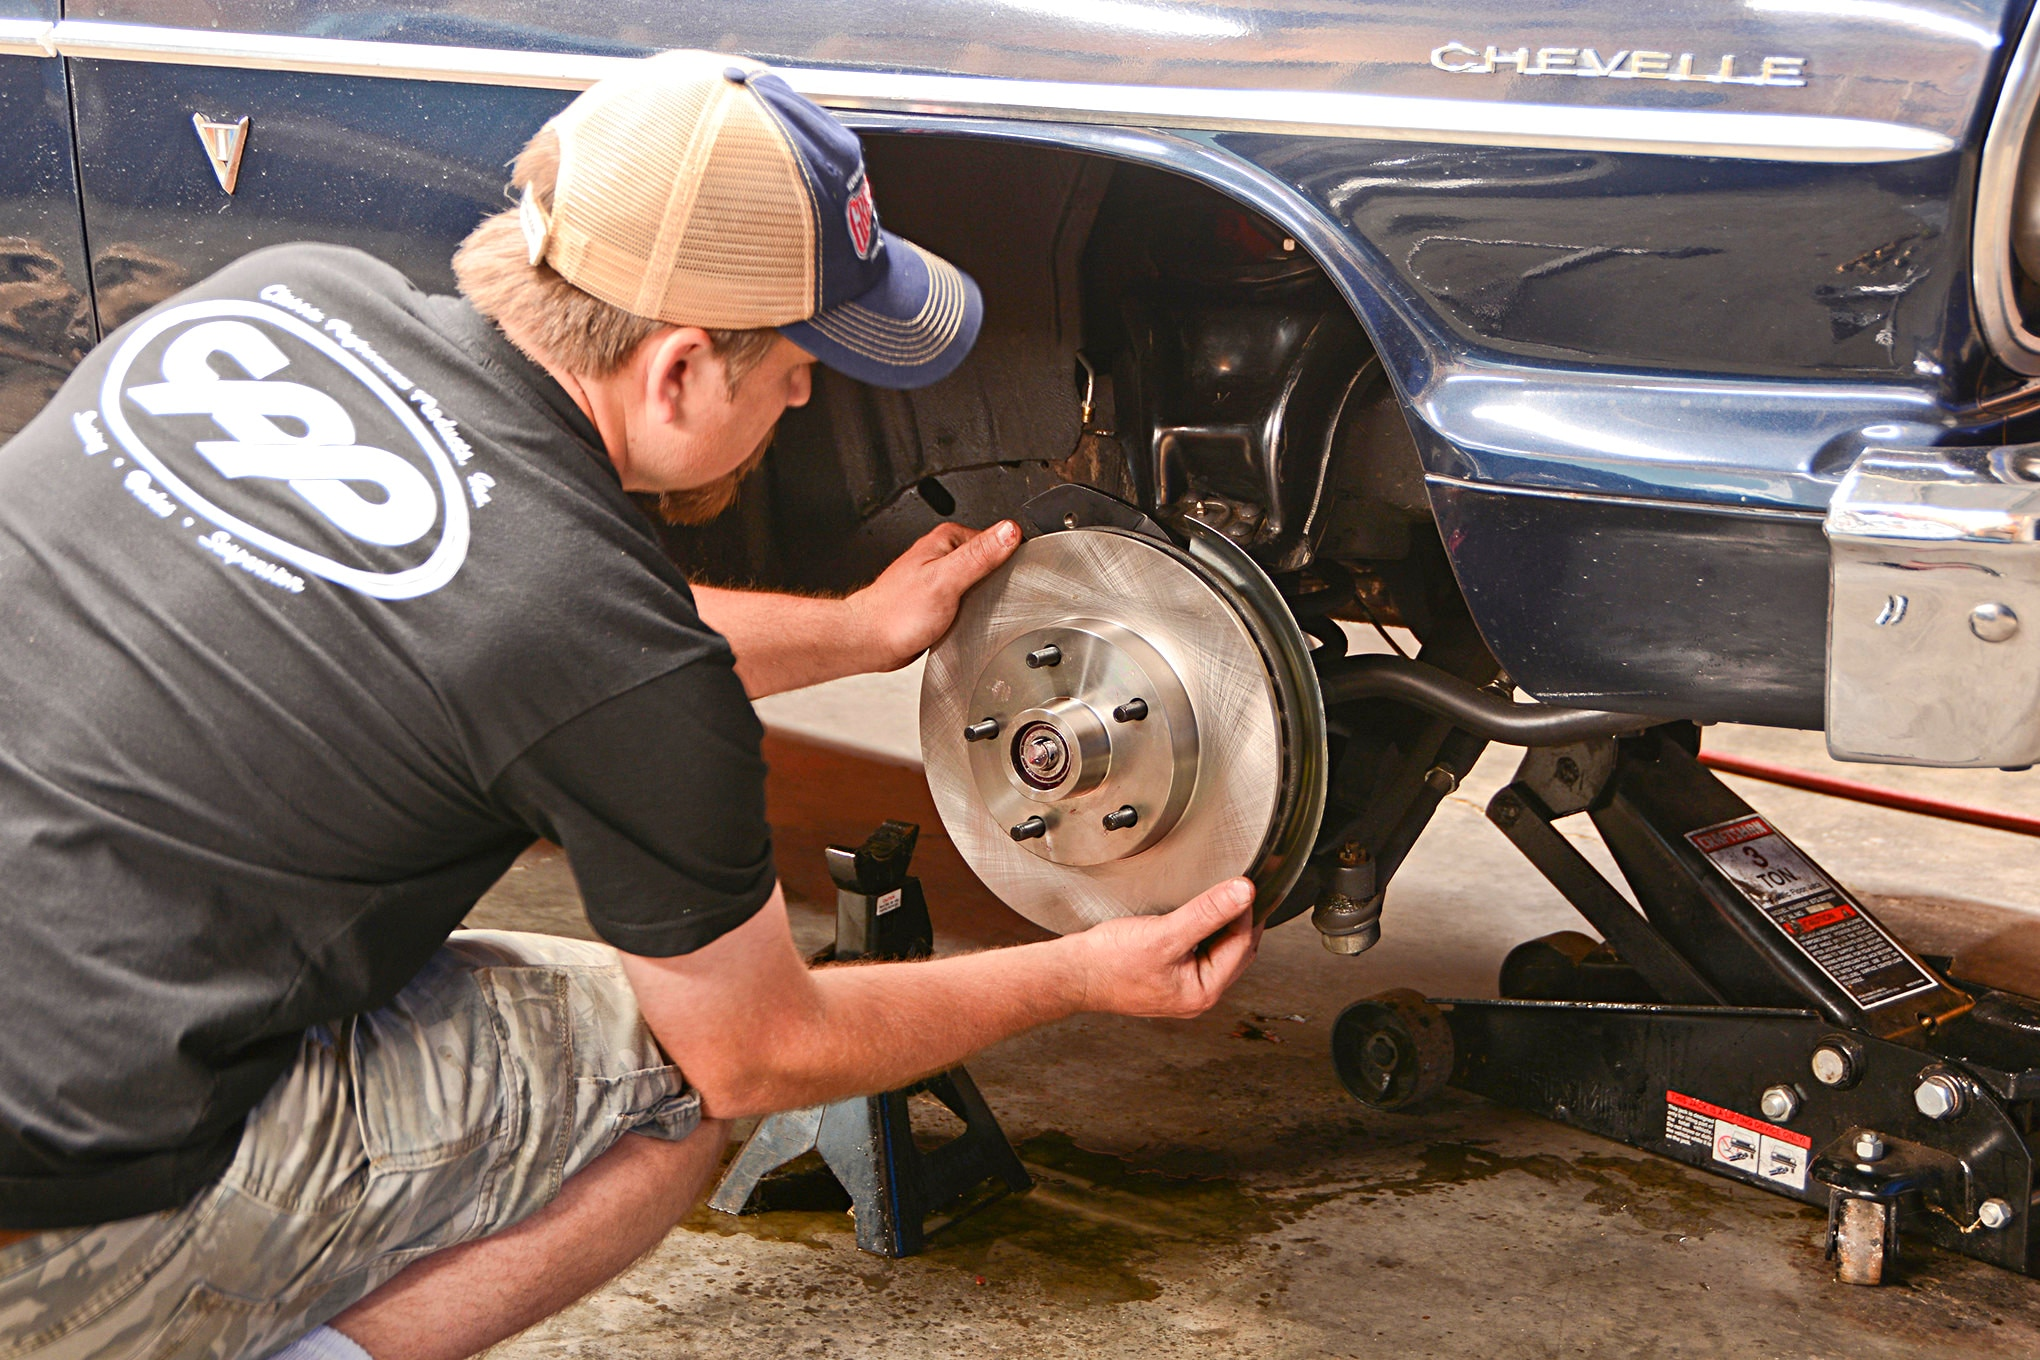 Curing Tire & Wheel Fitment Problems with Narrow Disc Brakes